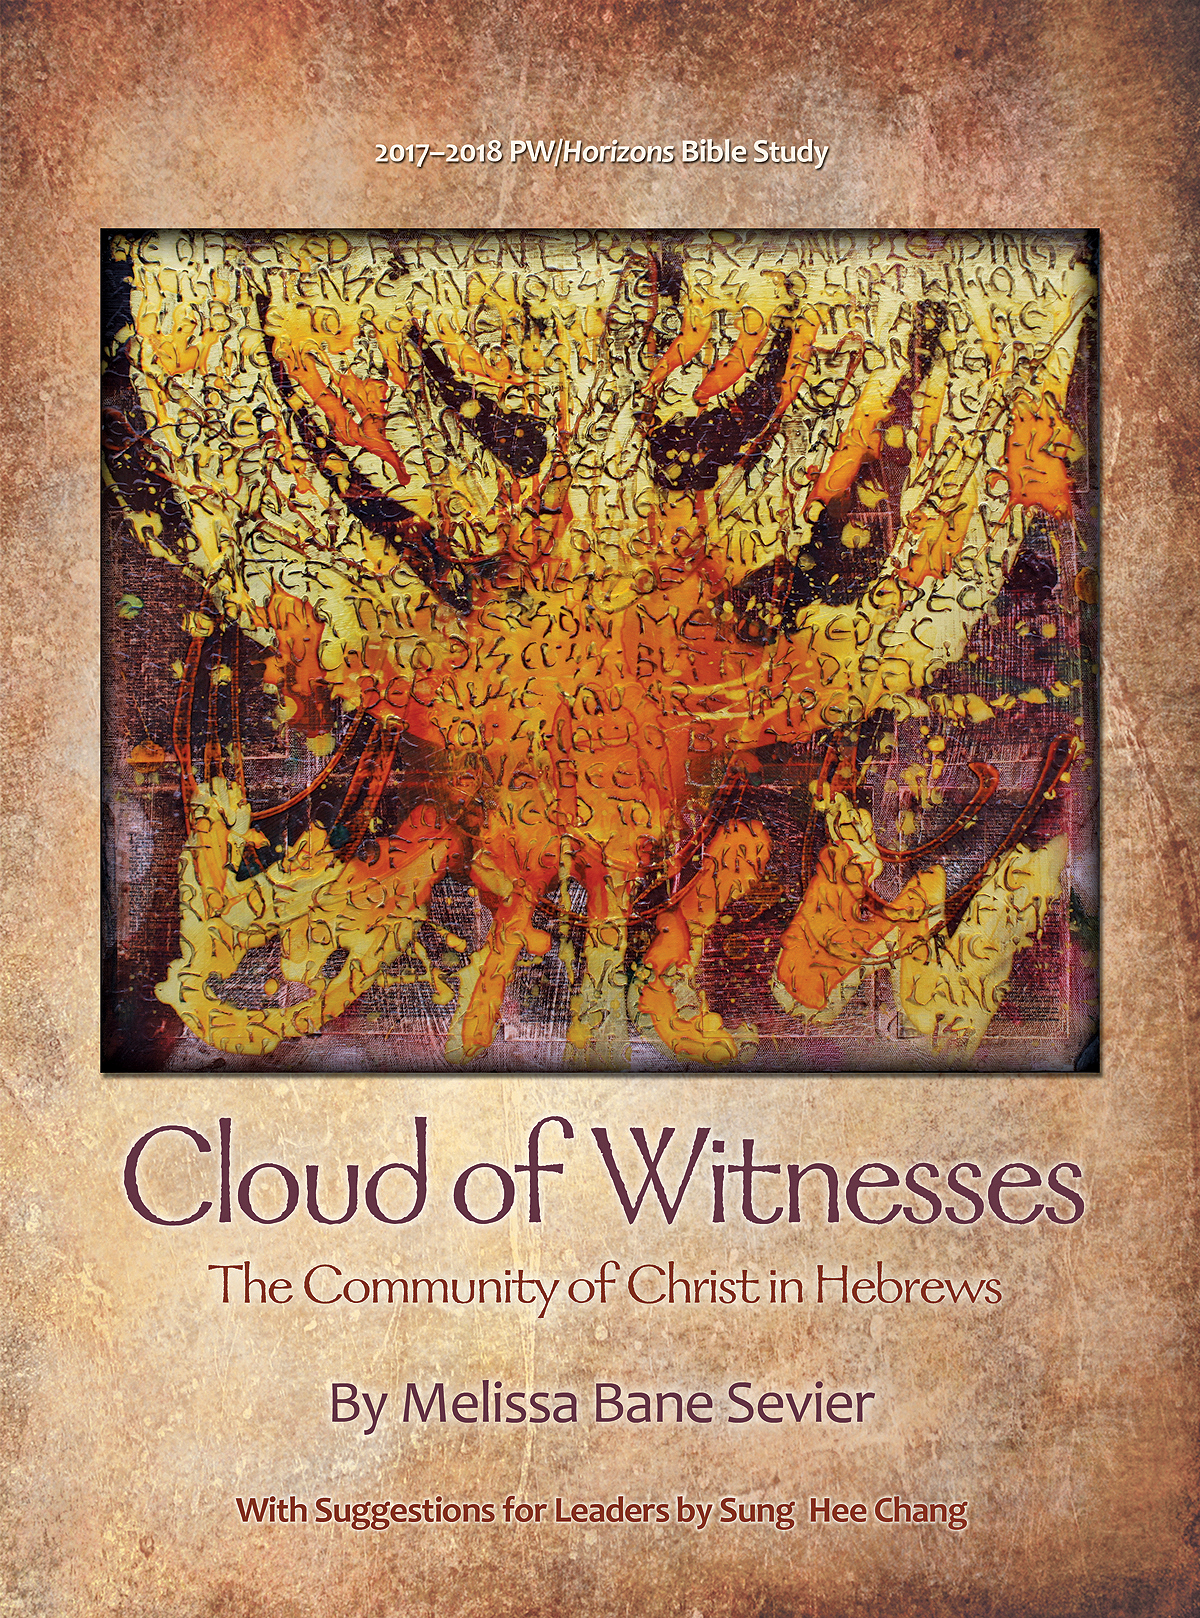 Cloud of Witnesses (2017-2017 PW Bible Study)